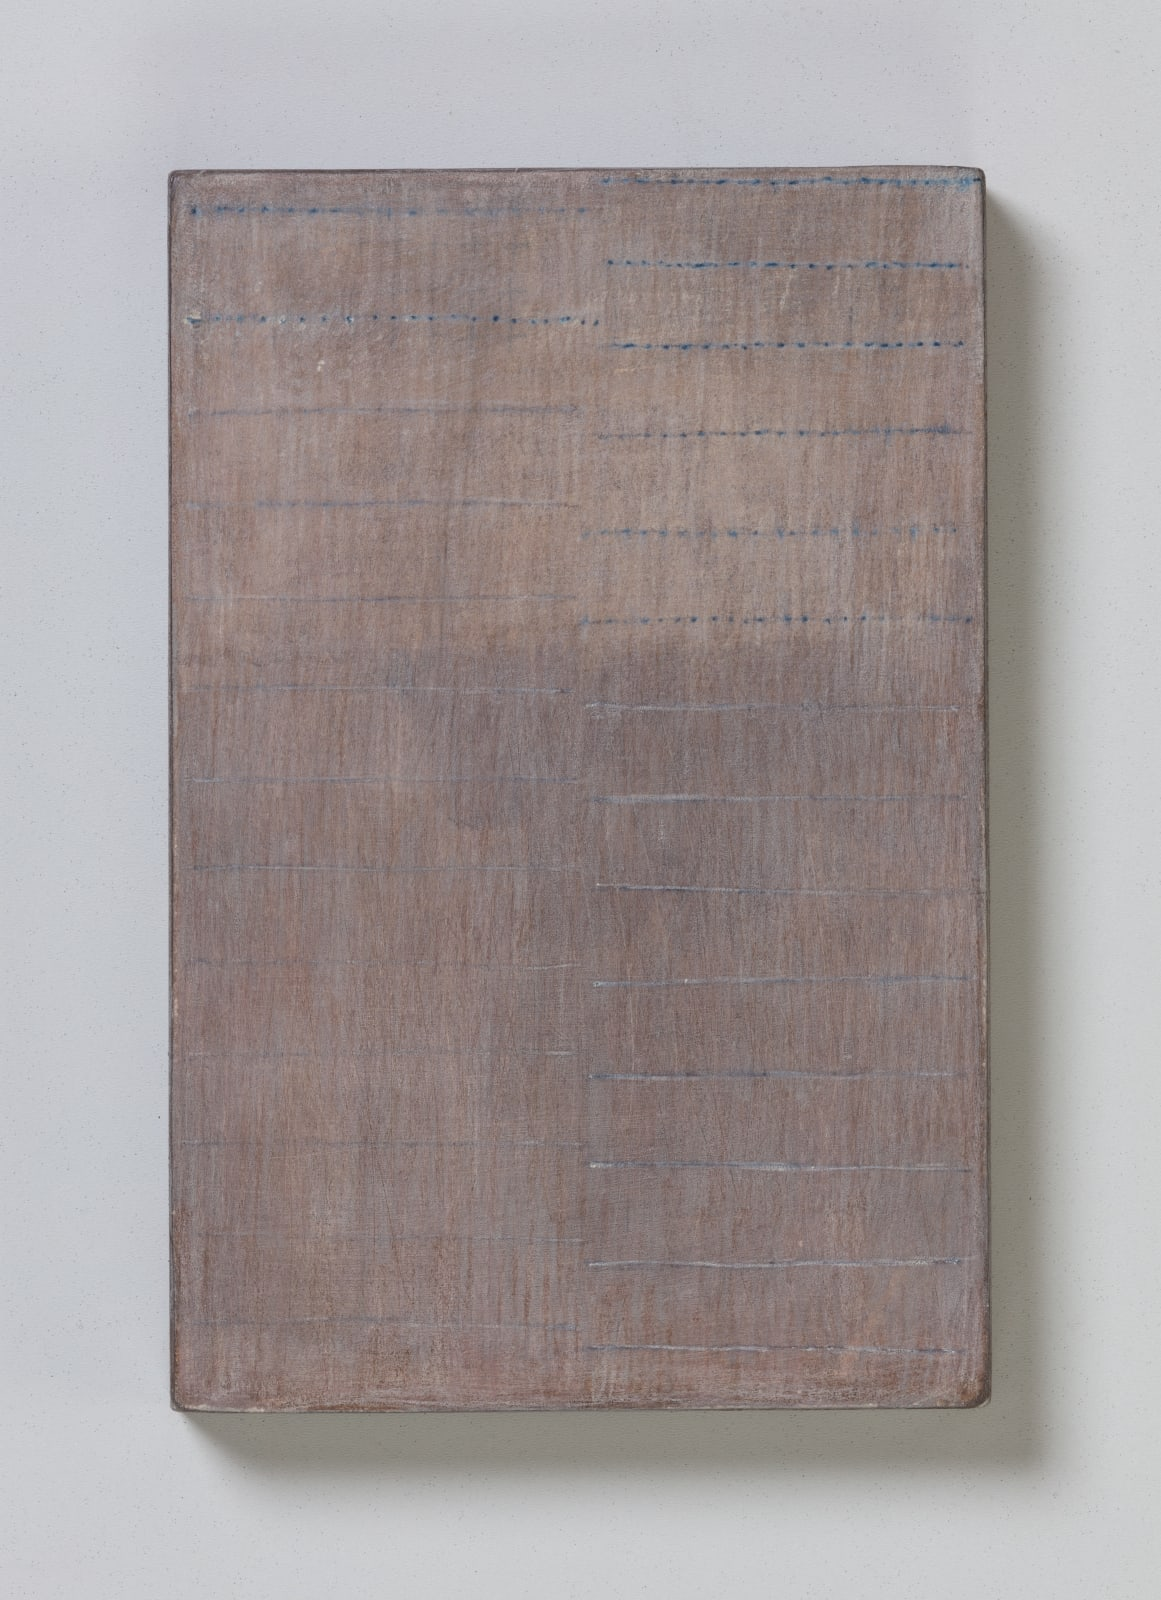 No.11, from flume series, 2020 oil on paper on wood 20.5 x 13.5 cm / 8 x 5.3 in Sold